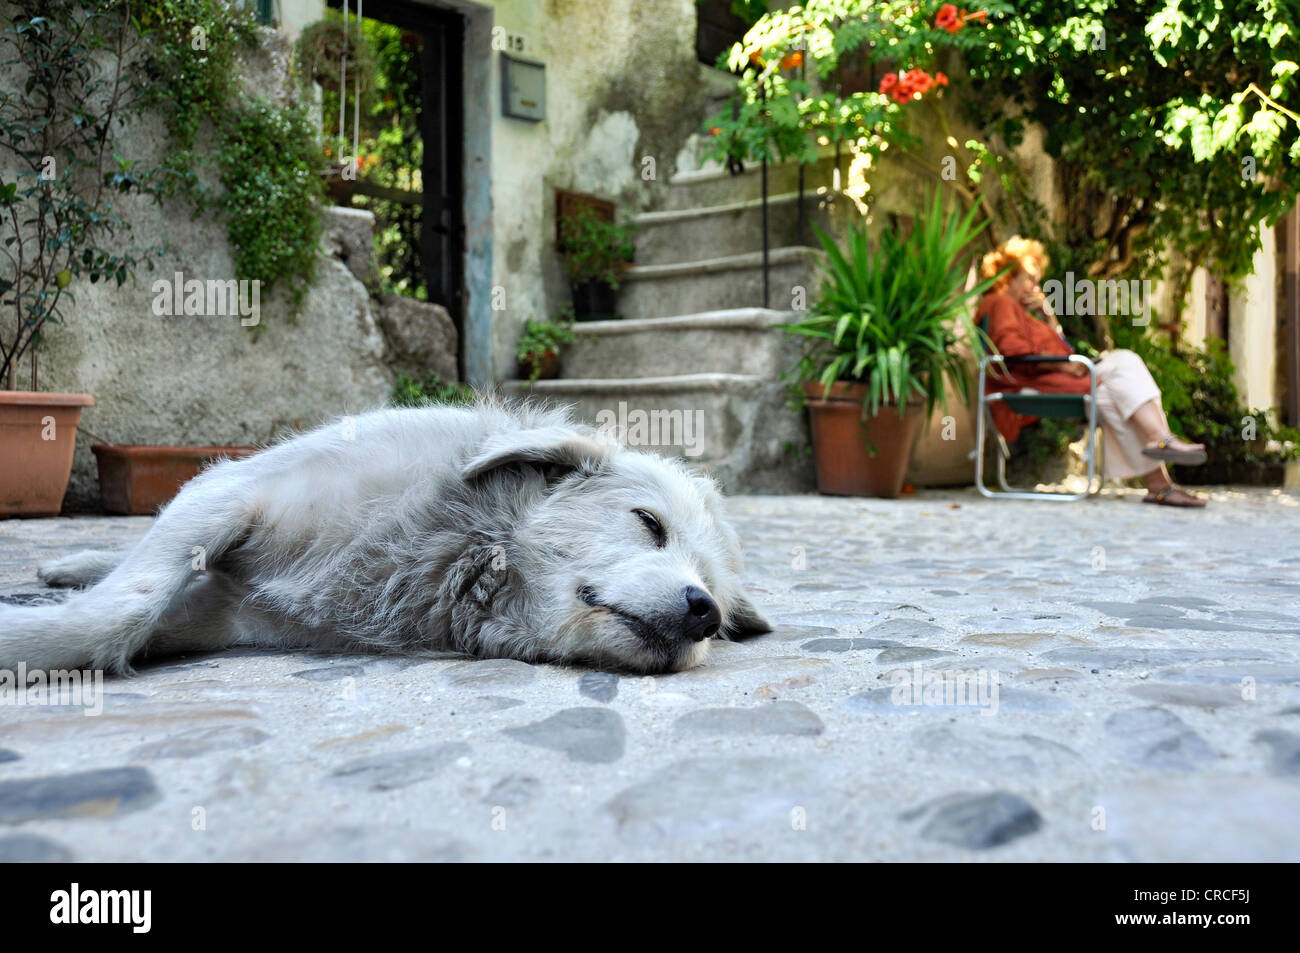 Sleeping dog in front of a house, main street, Via Garibaldi, the medieval town of Vecchia Calcata, valley of Valle - Stock Image